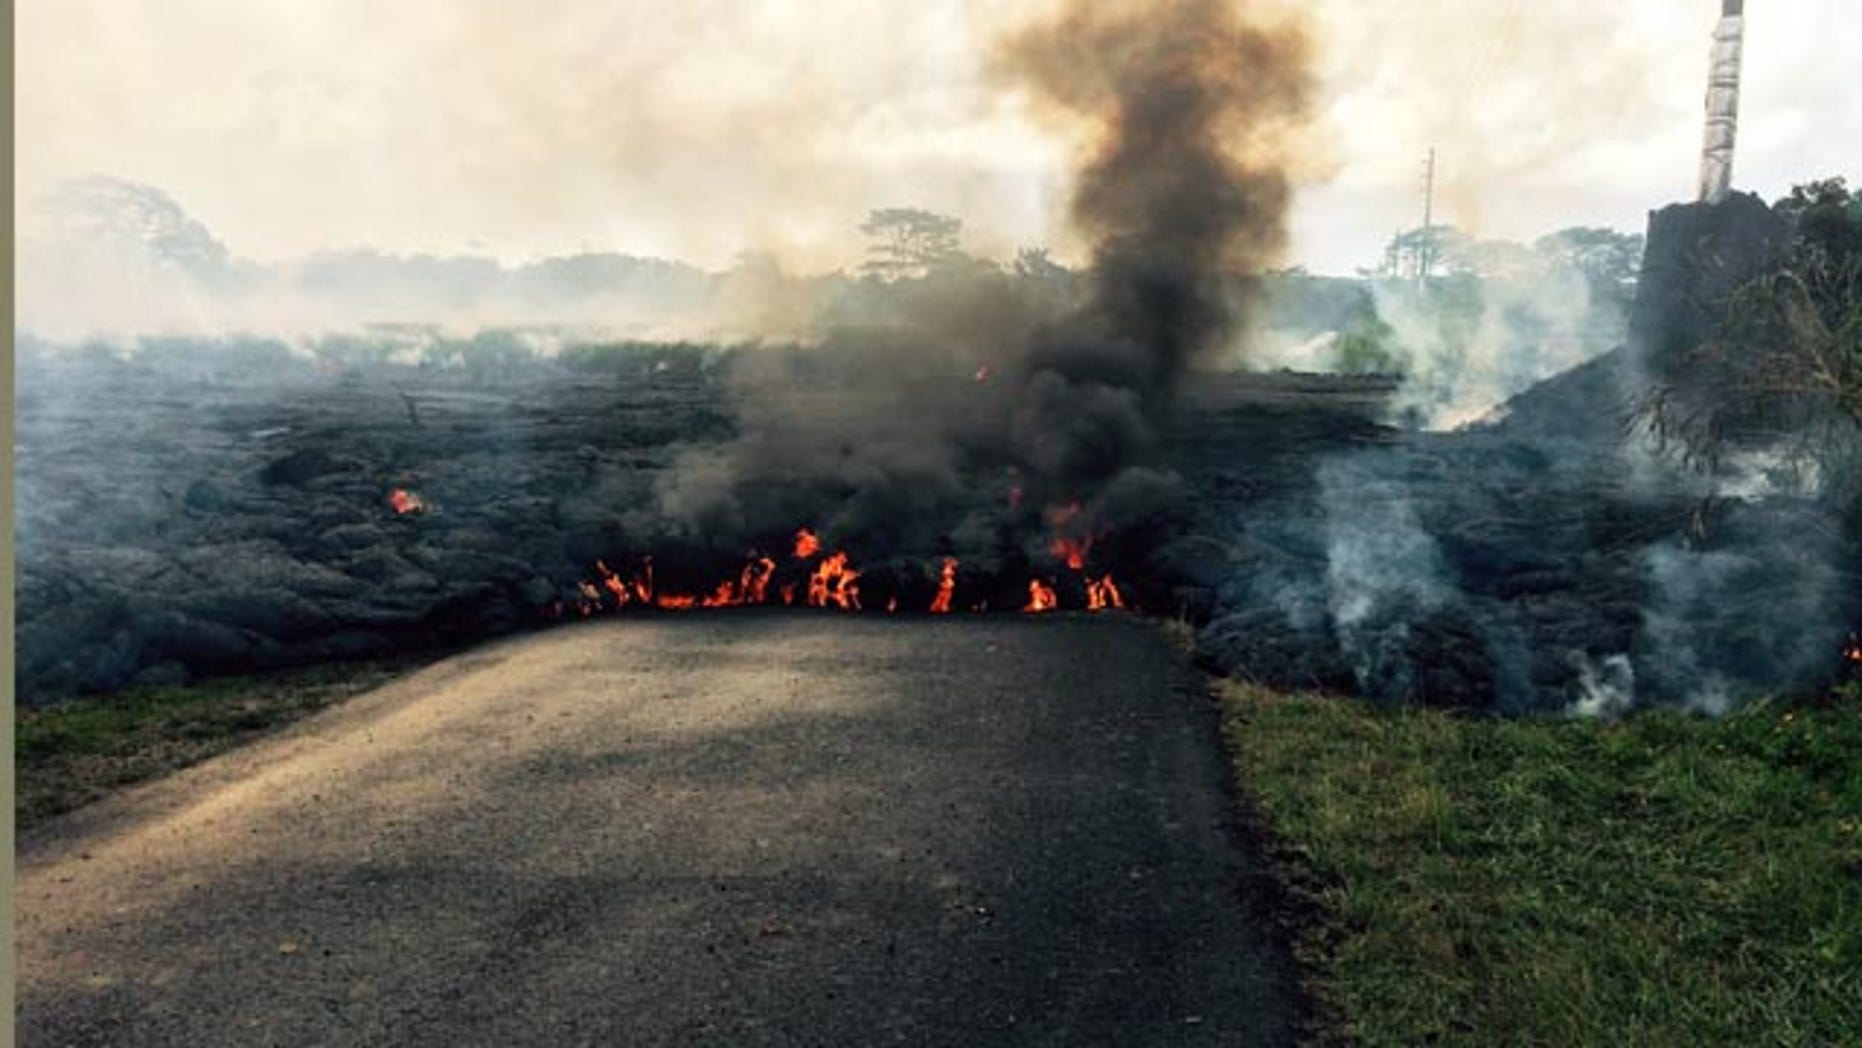 October 24, 2014: In this photo from the U.S. Geological Survey, the lava flow from Kilauea Volcano that began June 27 is seen as it crossed Apa'a Street near Cemetery Road near the town of Pahoa on the Big Island of Hawaii. (AP/U.S. Geological Survey)